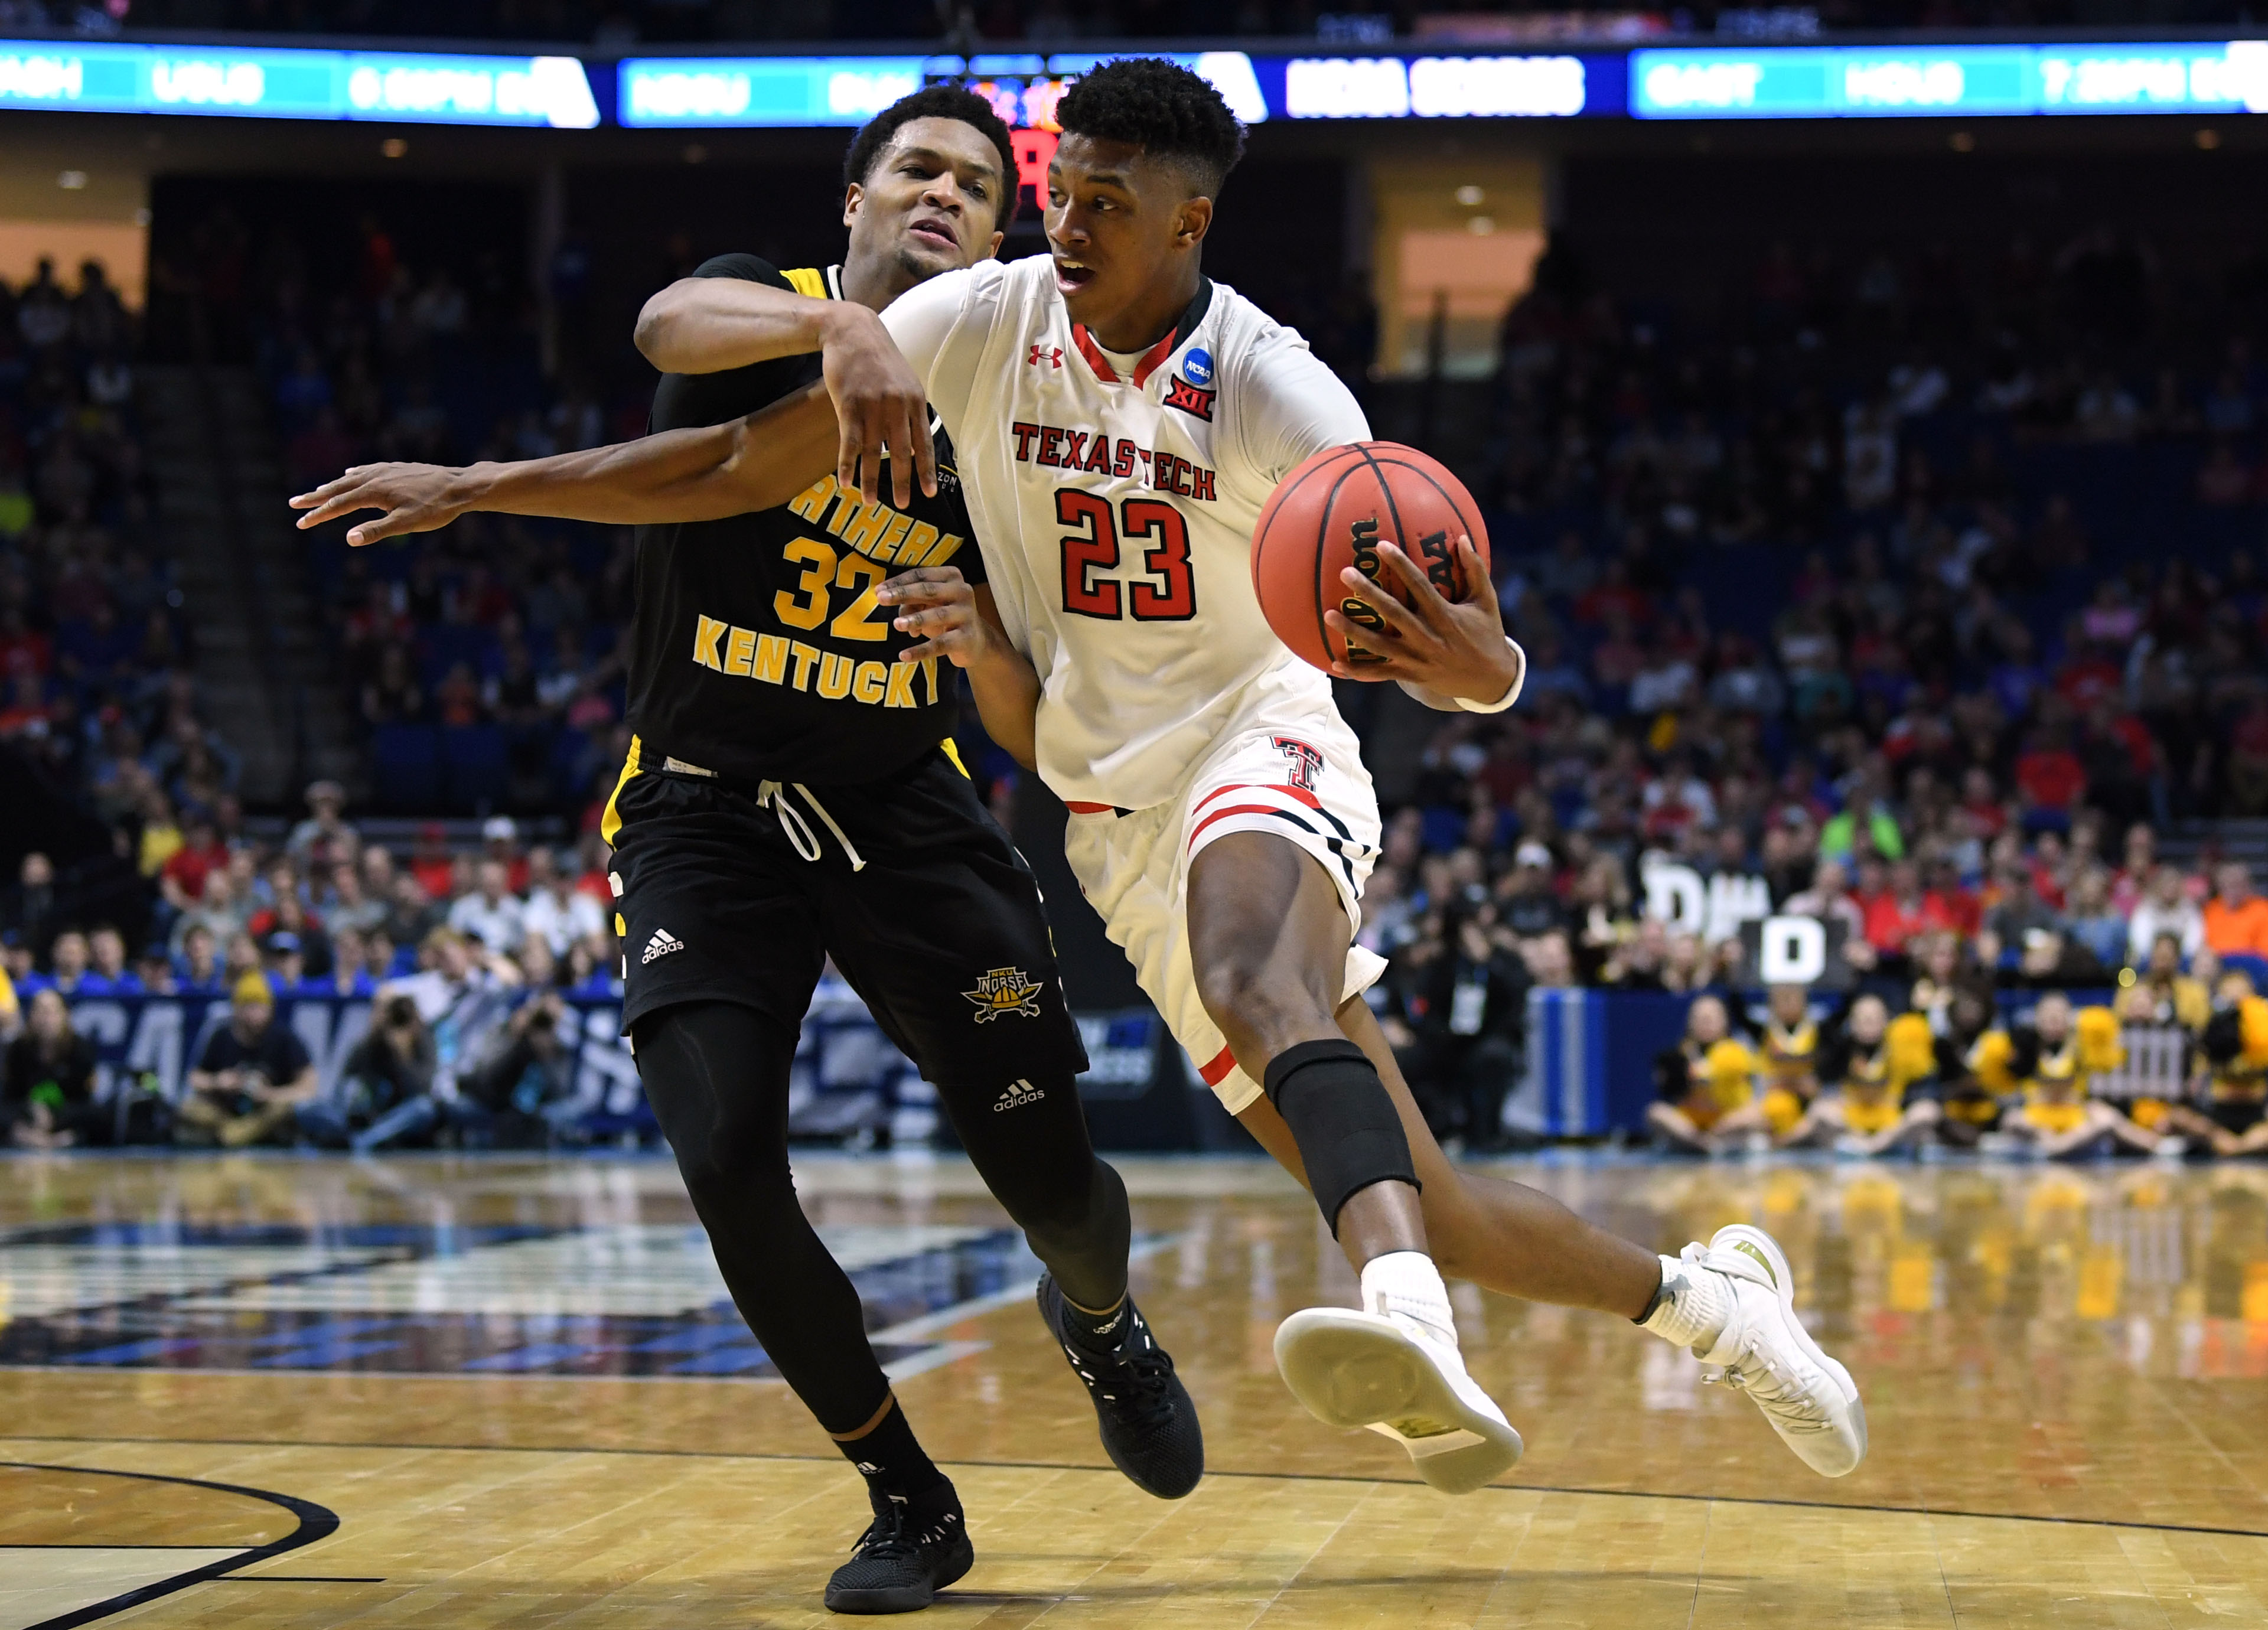 March Madness 2019: Jarrett Culver showed why he's a top NBA draft pick for Texas Tech